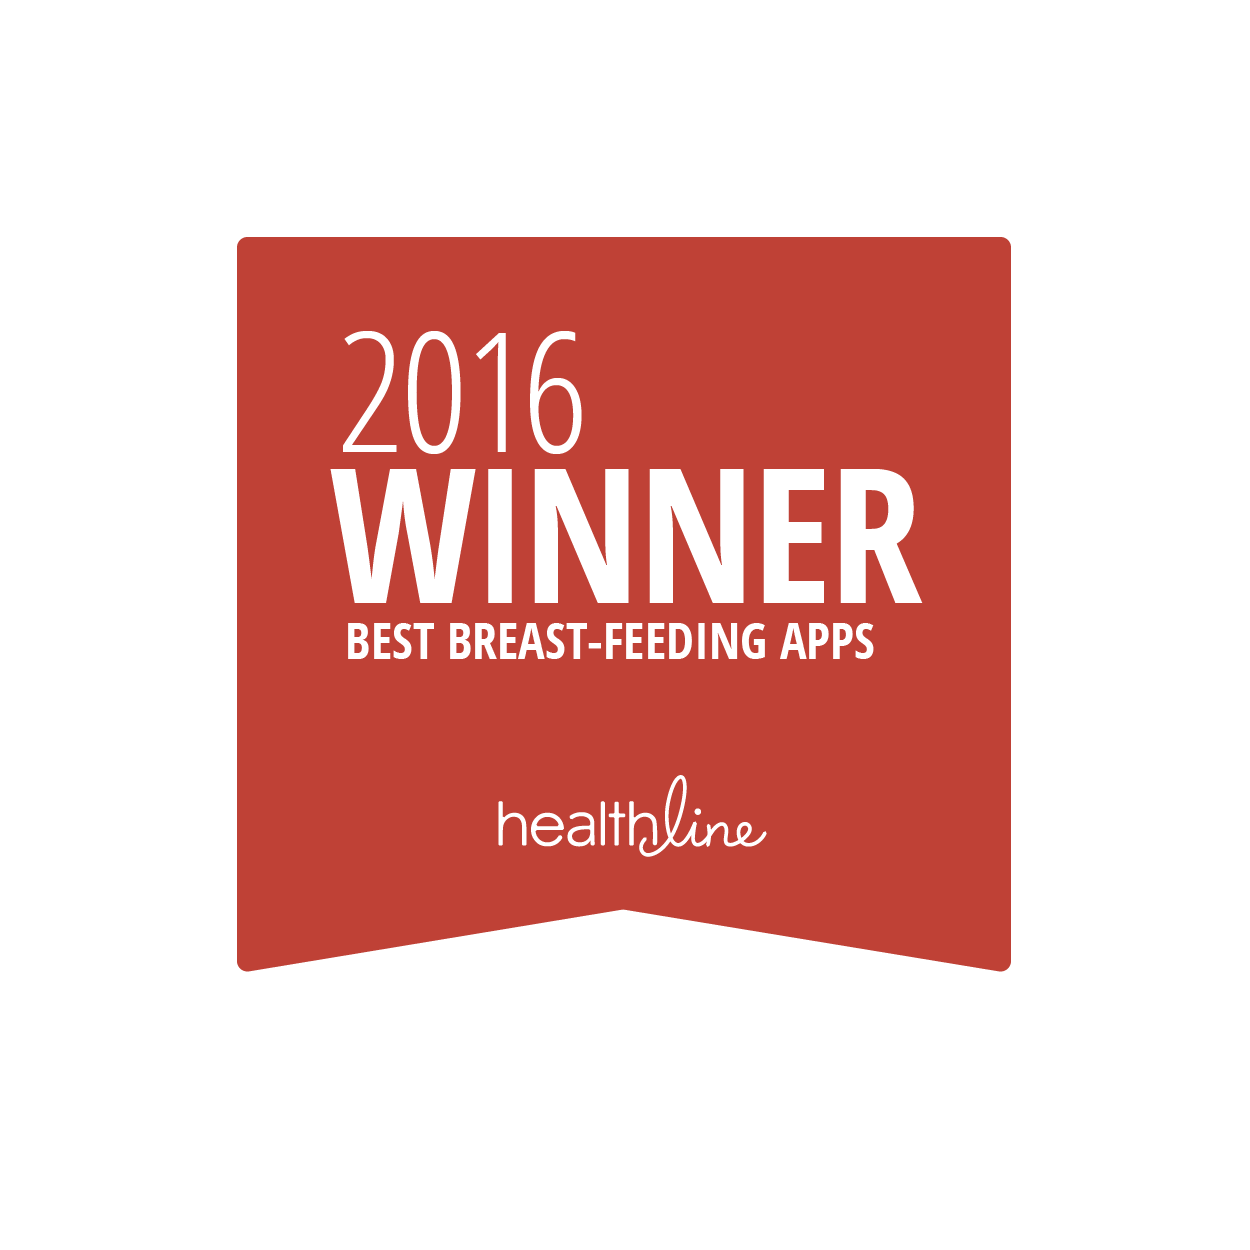 The Best Breast-Feeding Apps of the Year